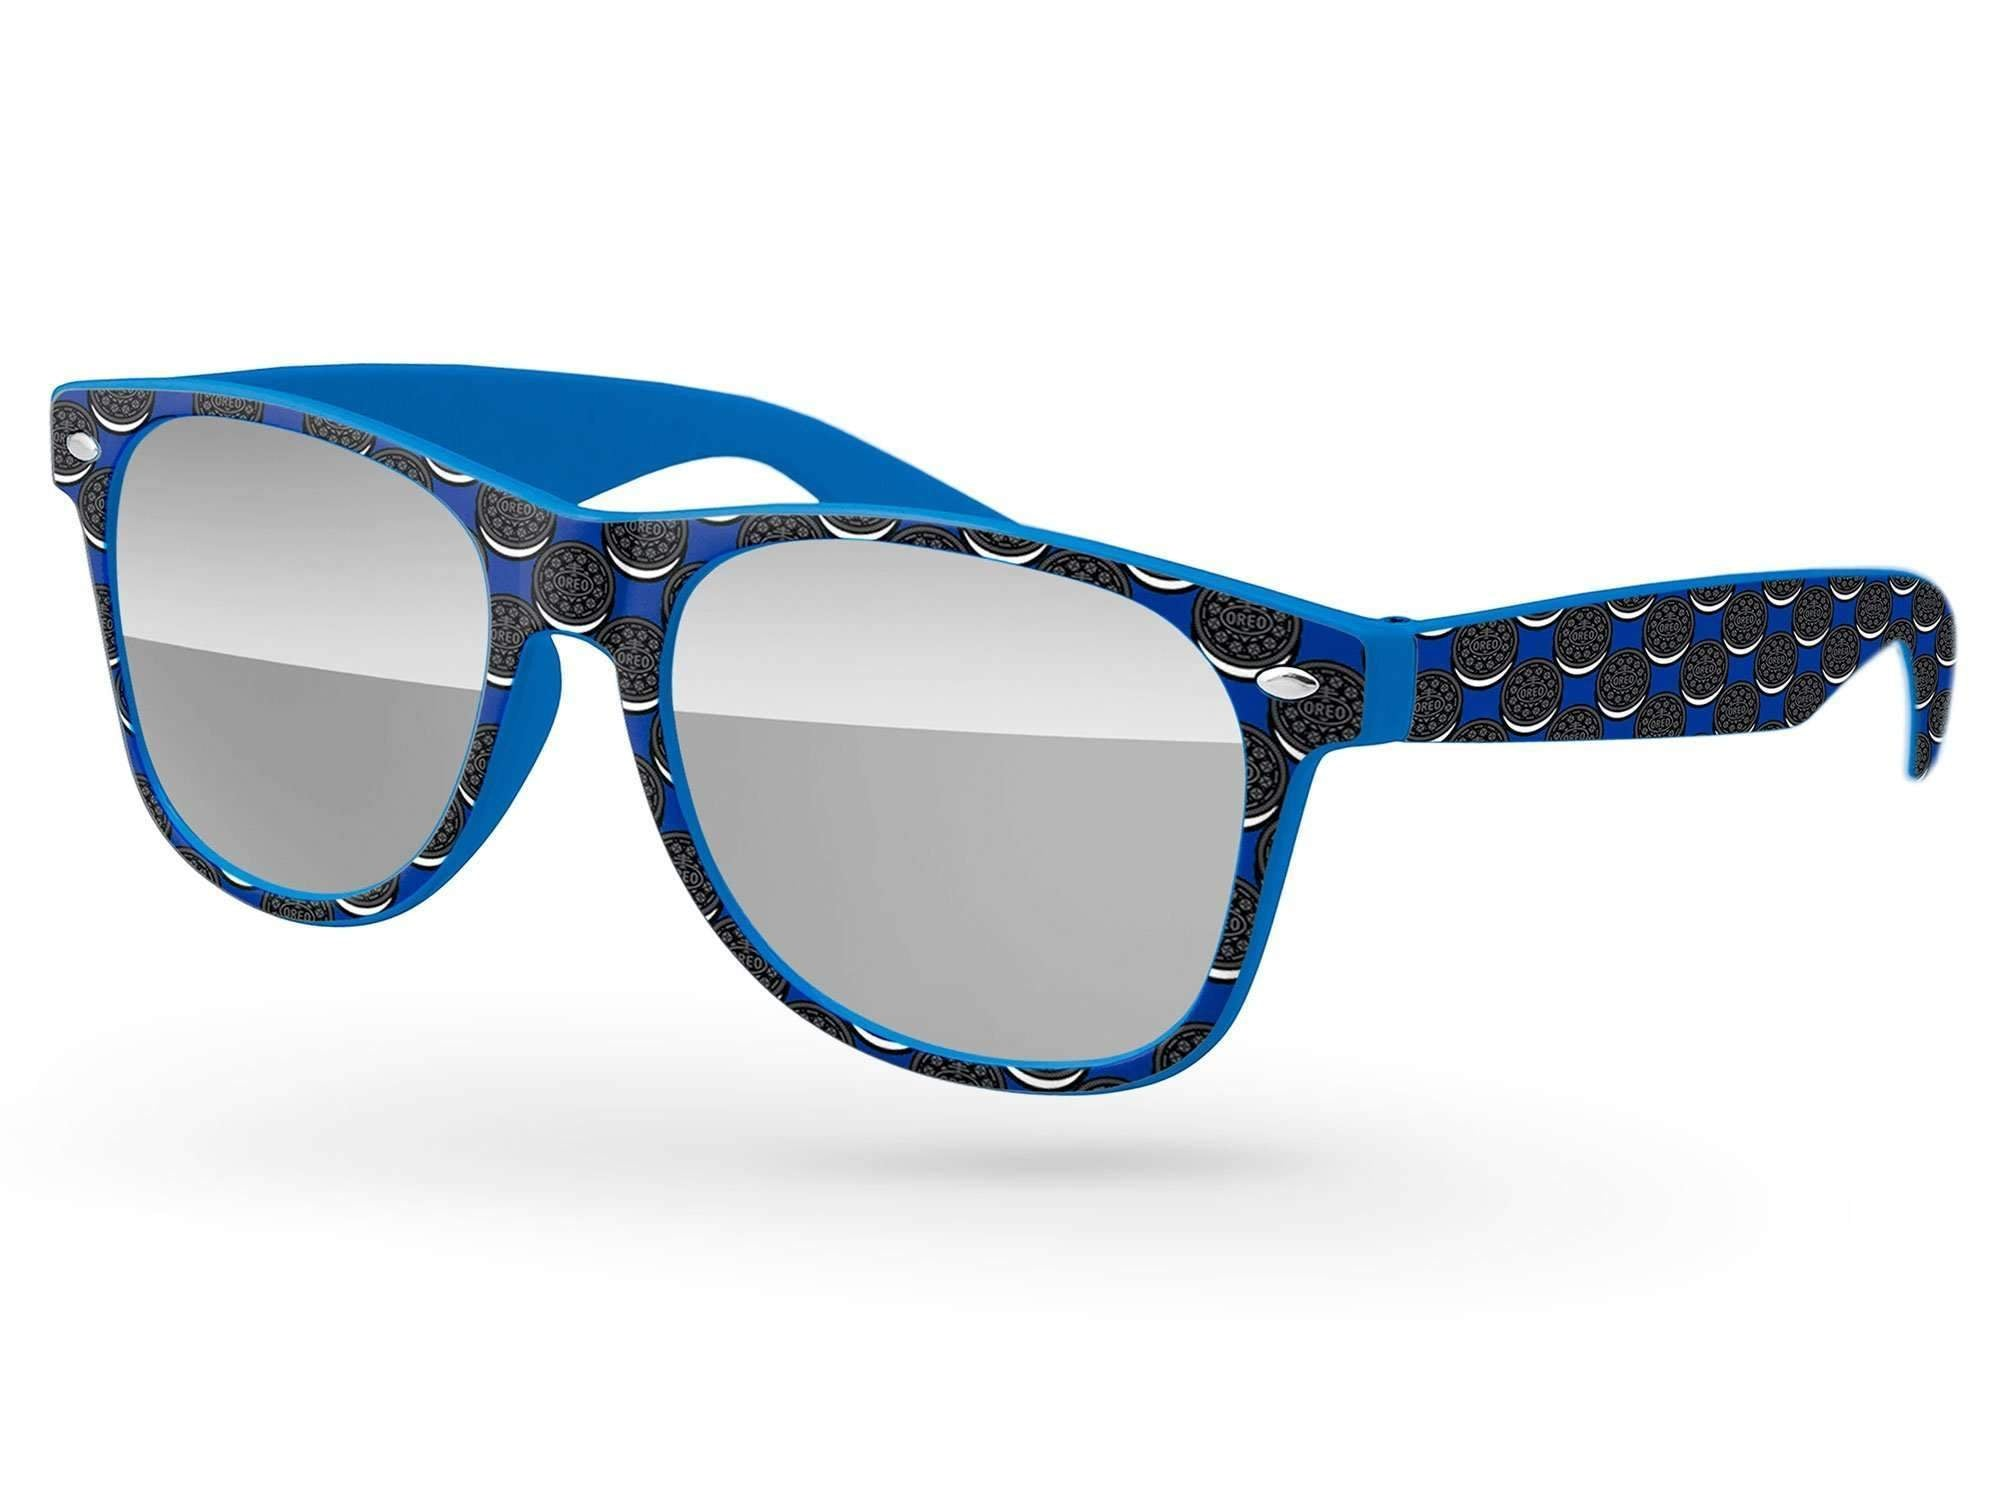 RM060 - Retro Mirror Promotional Sunglasses w/ full-color full-frame heat transfer